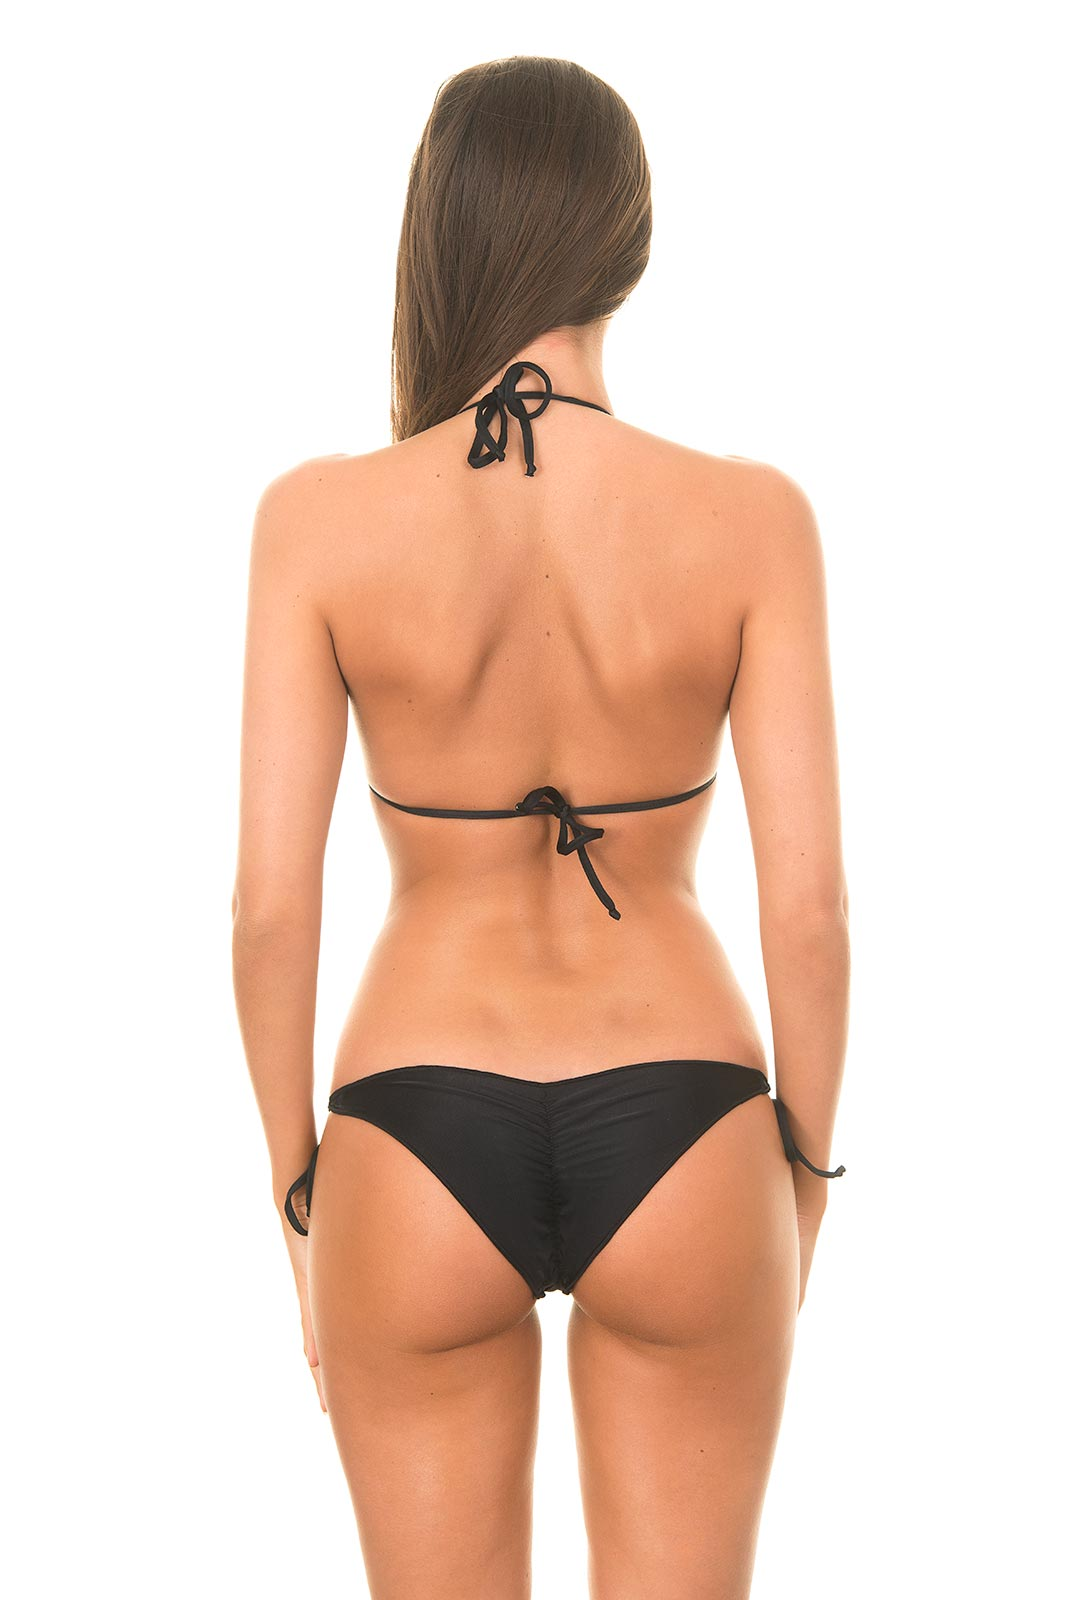 Brazilian Bikinis All of the world thinks that a Brazilian woman has a special touch, and this is not only in the color of her skin and in her curves but also in her personality. If there a garment that reflects this way of being, without doubt it is a Brazilian-style bikini.